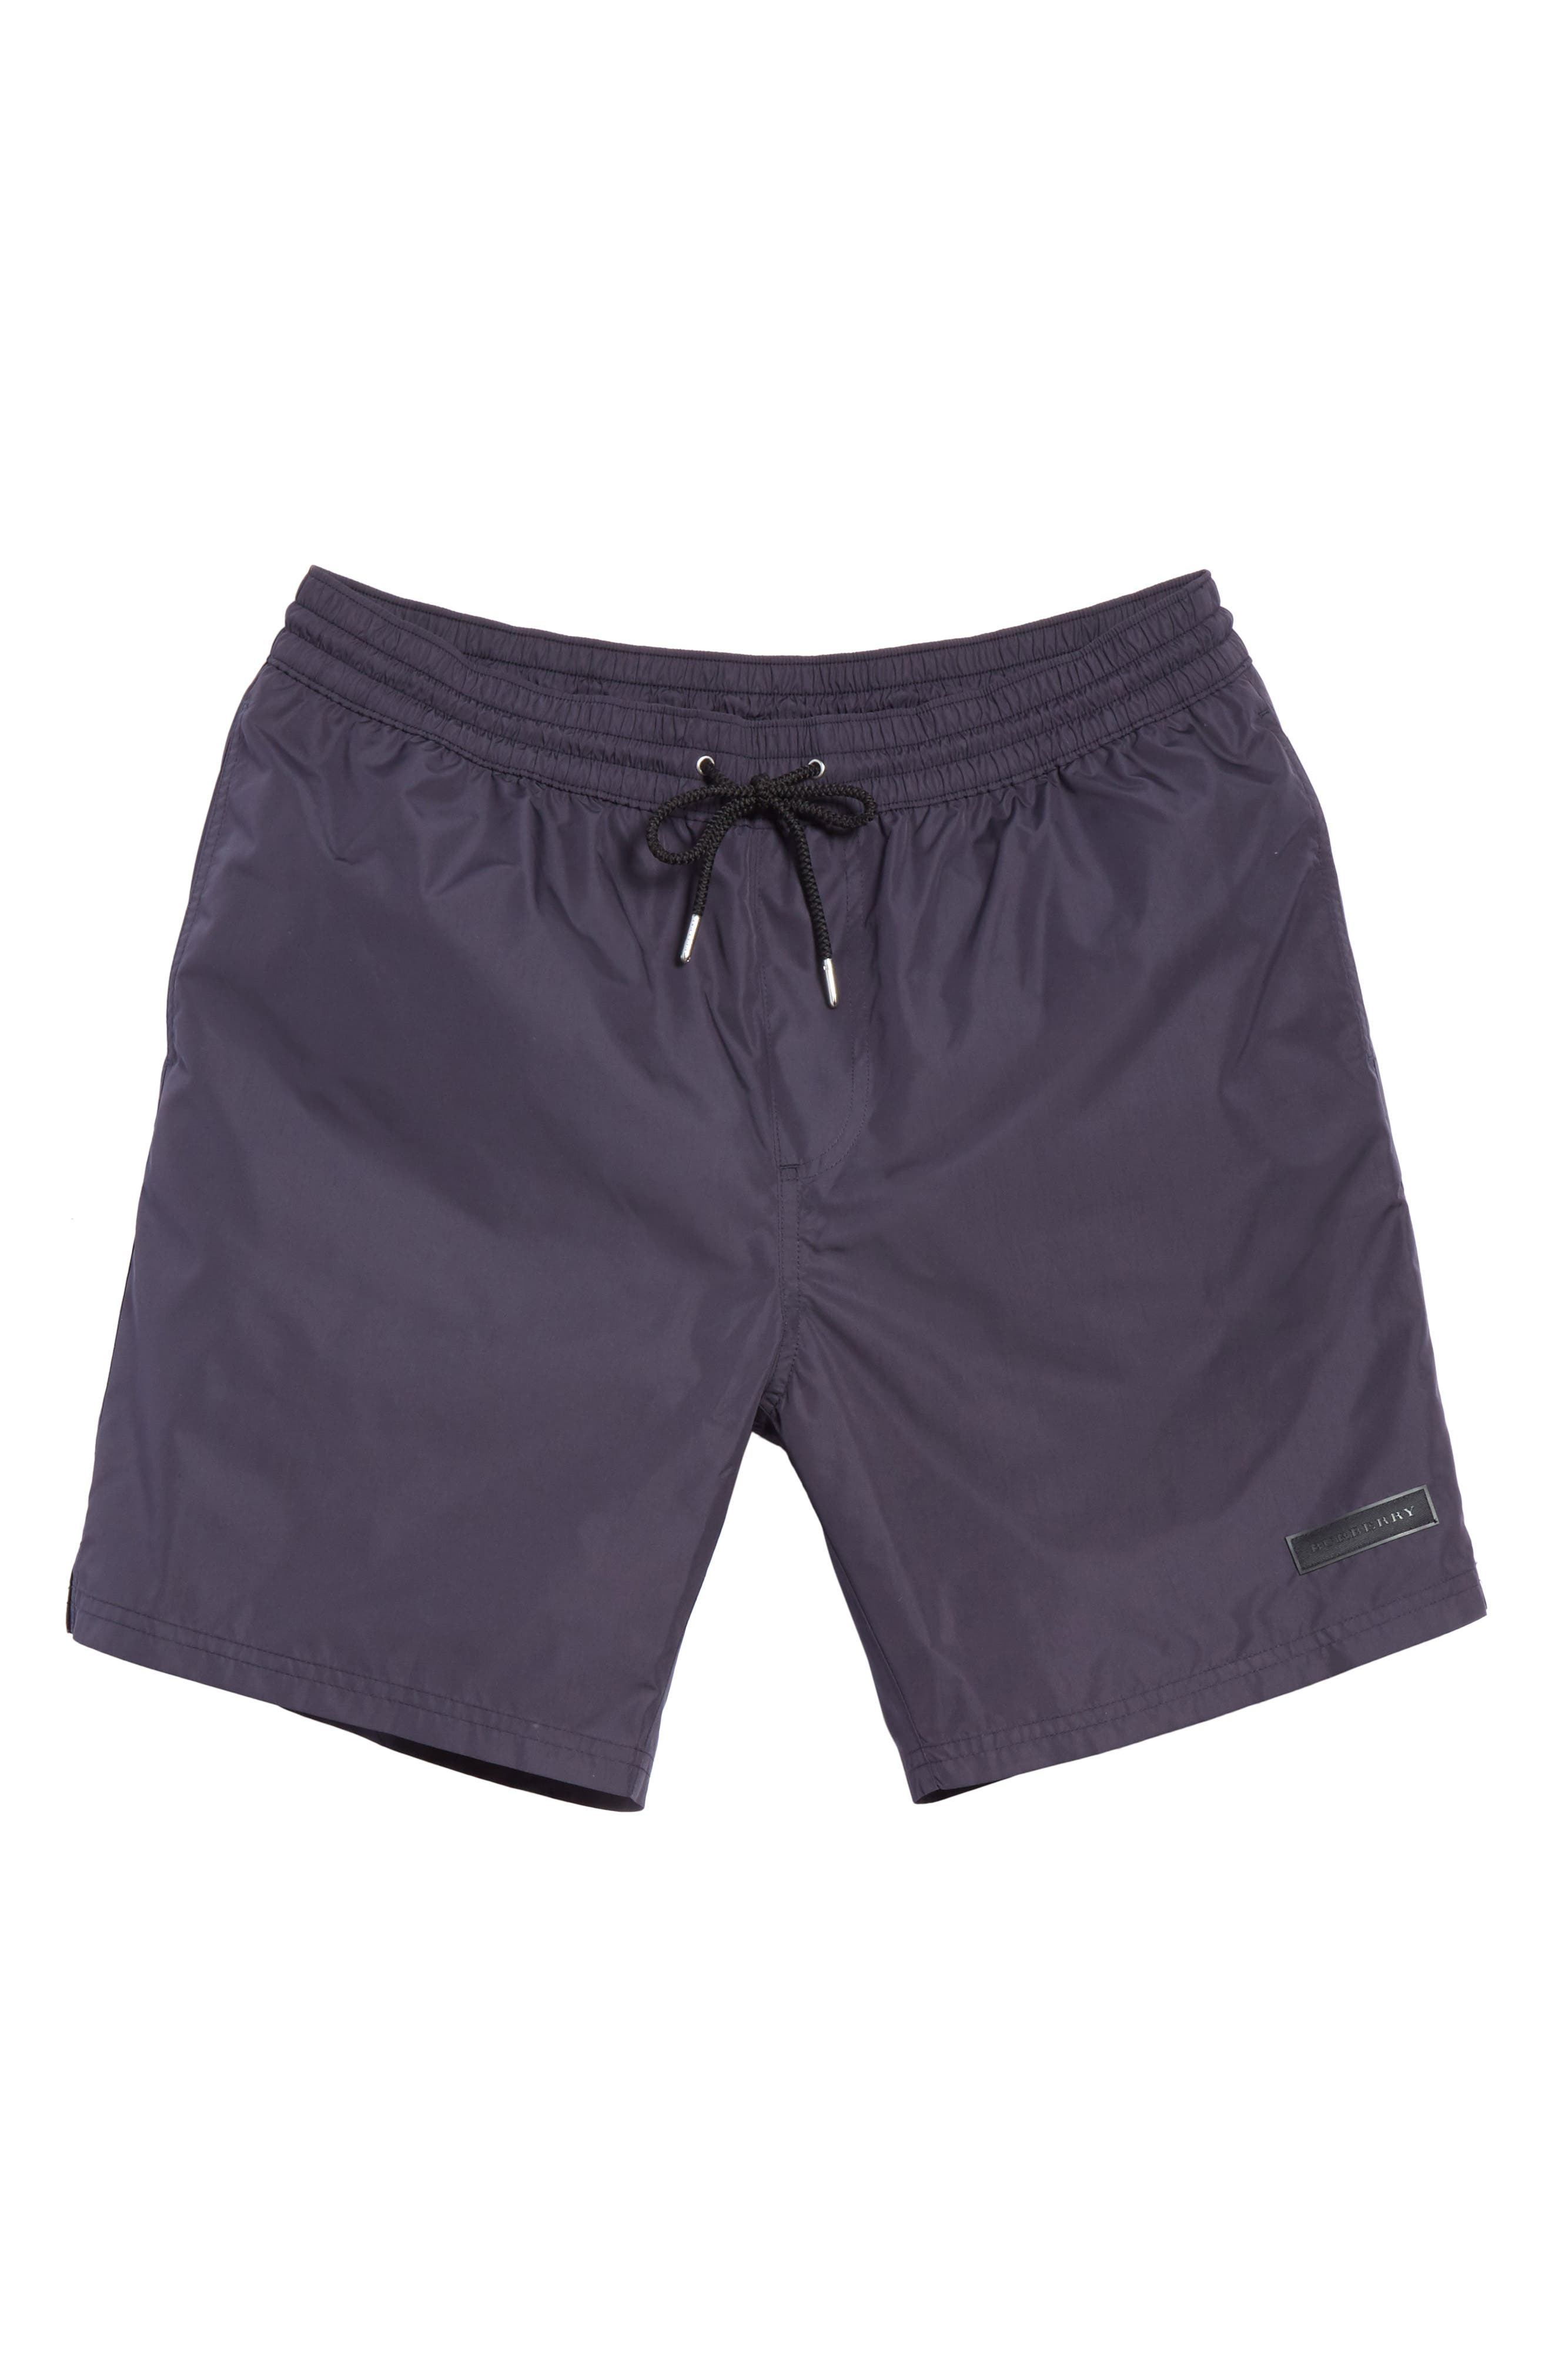 Guildes Swim Trunks,                             Alternate thumbnail 6, color,                             Navy